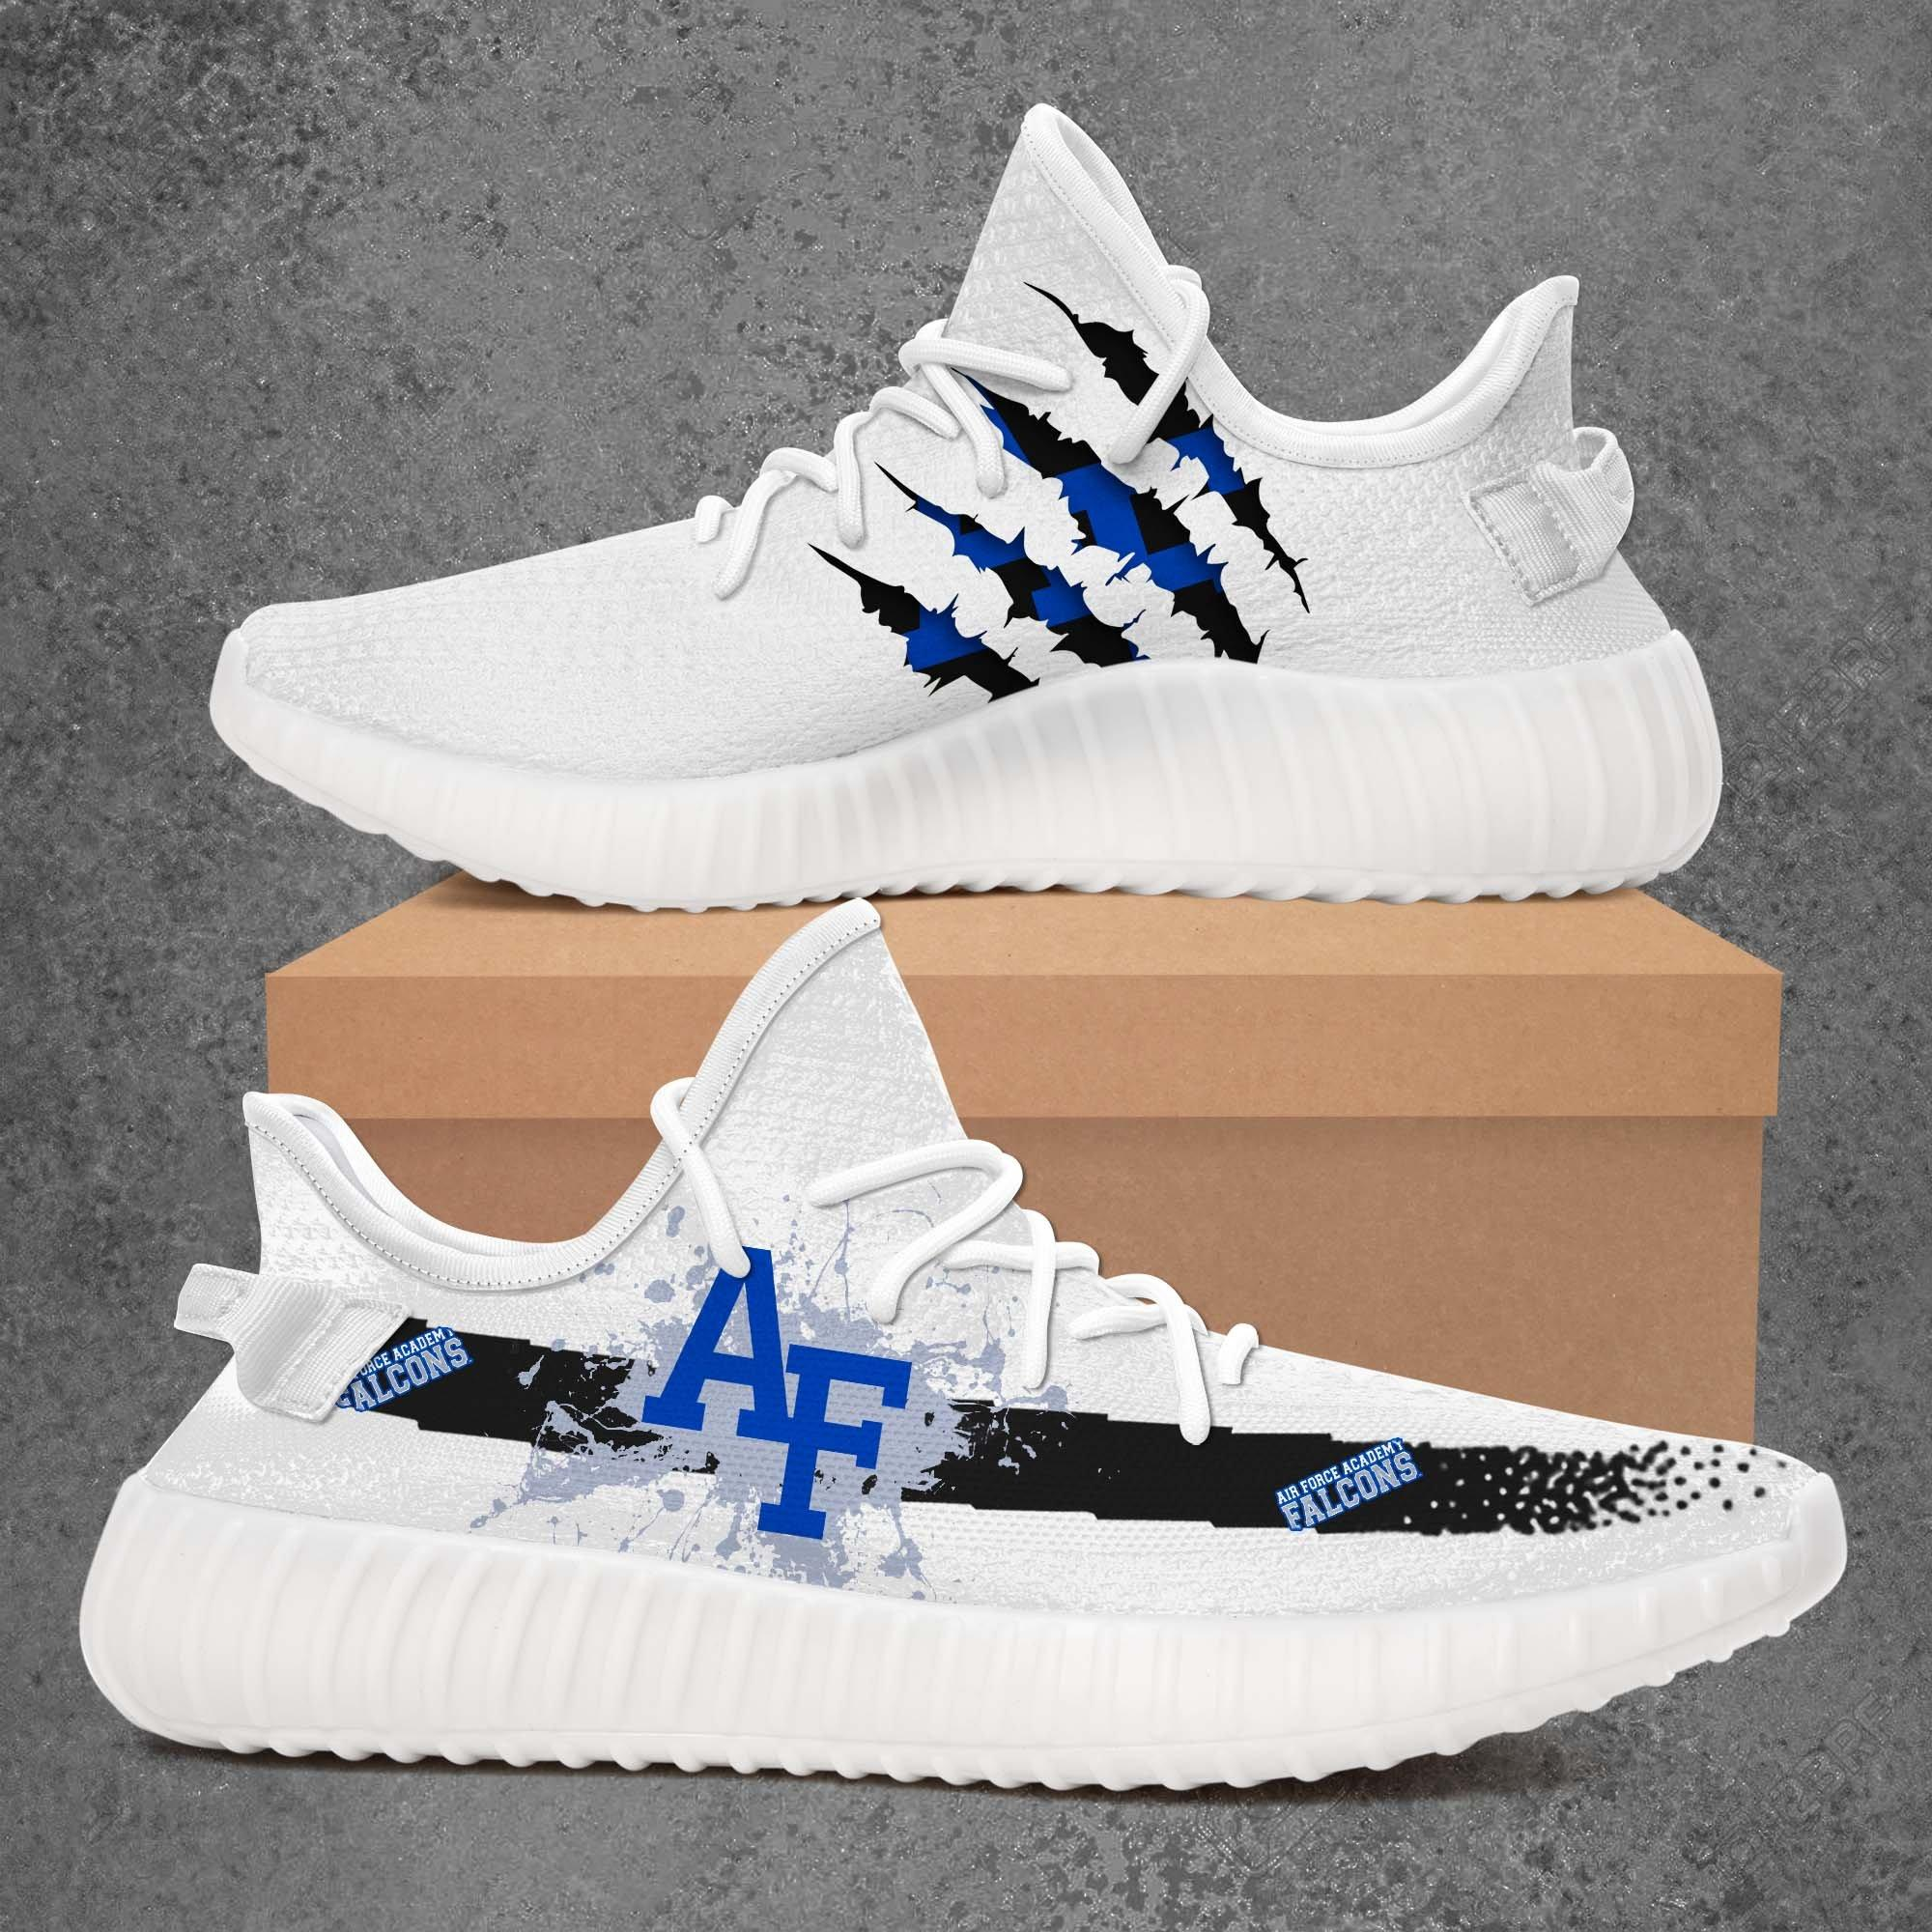 Air Force Falcons NCAA Sport Teams Adidas Yeezy Boost 350 v2 Top Branding Trends 2019